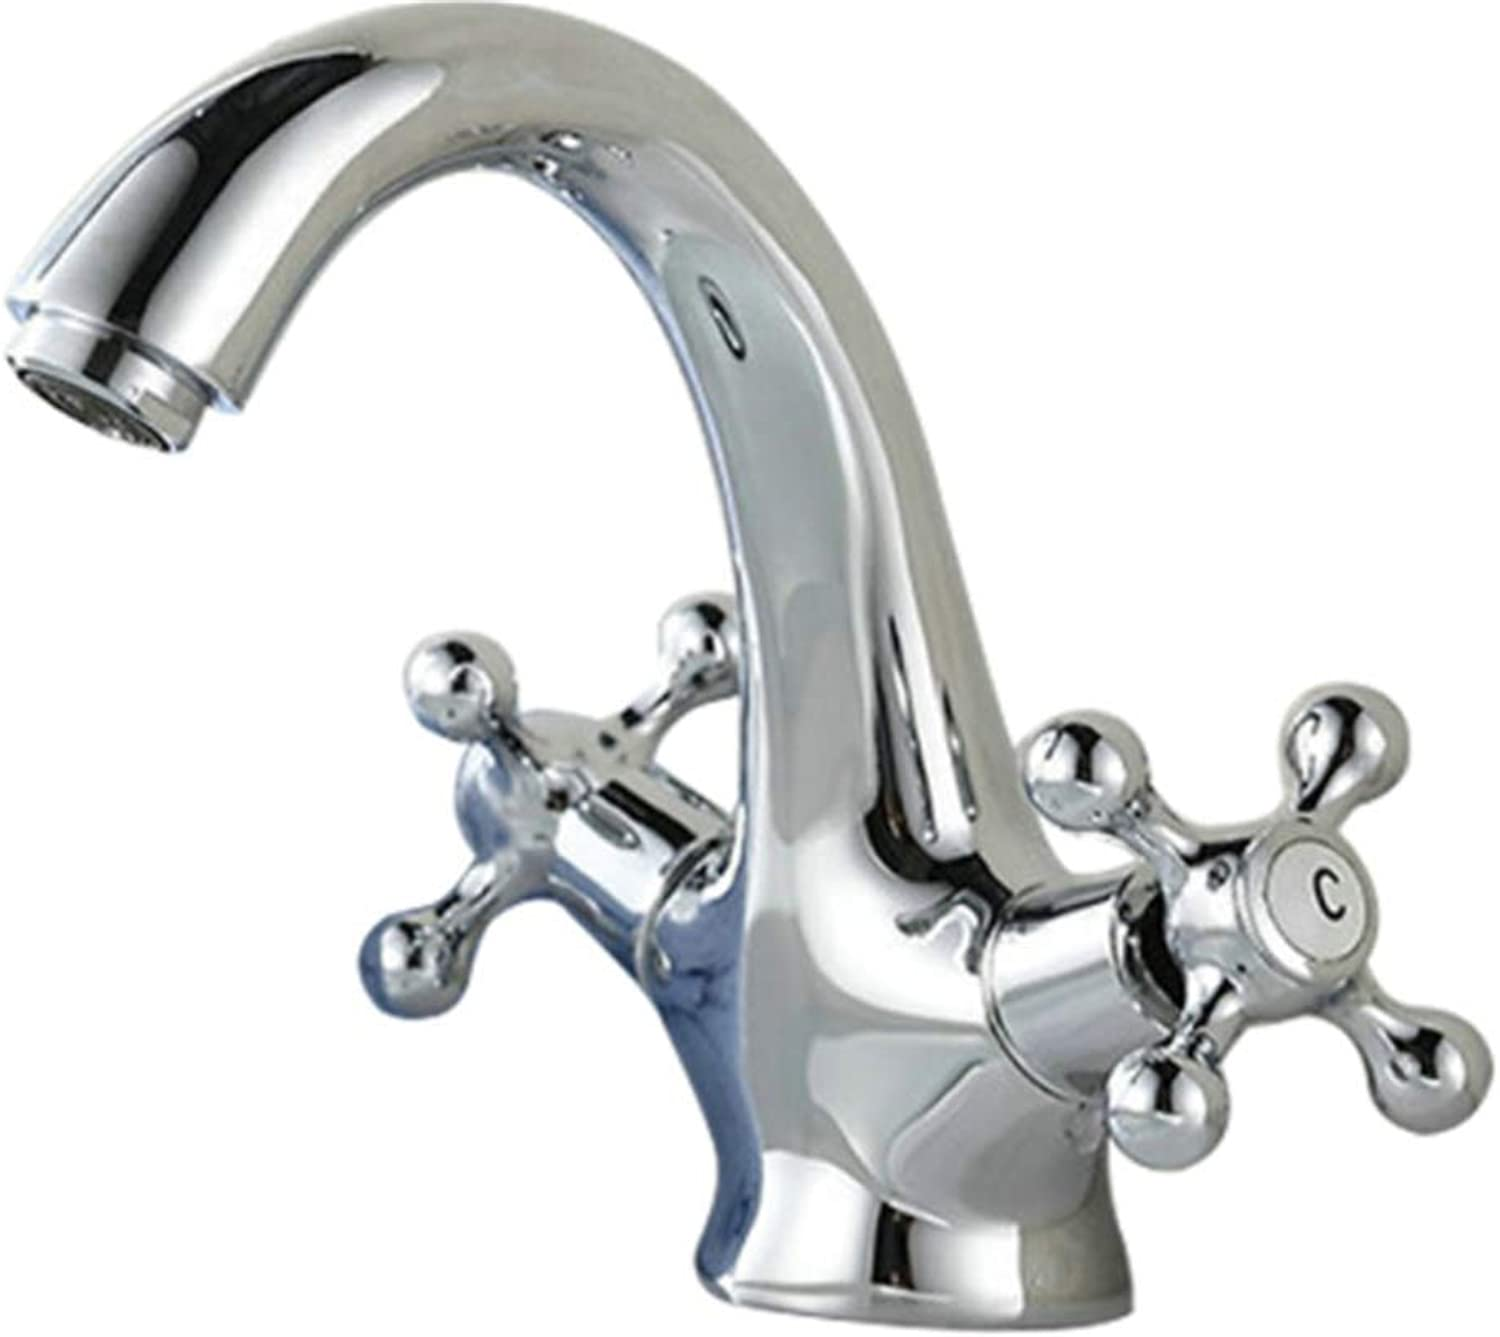 Taps Kitchen Basin Bathroom Washroomsilver Bathroom Faucet Dual Handle Vessel Sink Mixer Tap Hot and Cold Separation Switch